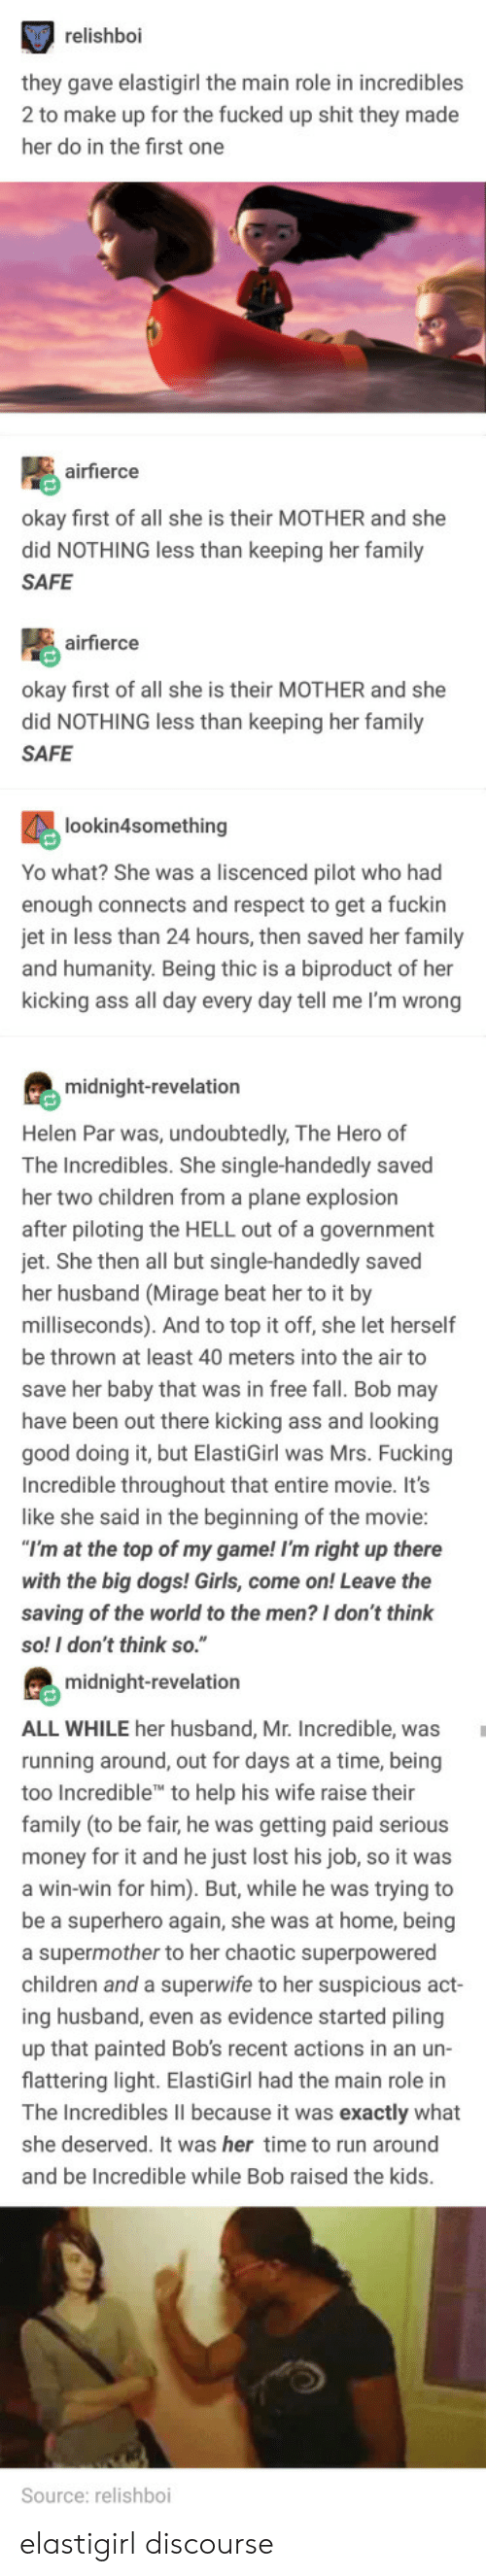 "Ass, Children, and Dogs: relishboi  hey gave elastigirl the main role in incredibles  2 to make up for the fucked up shit they made  her do in the first one  airfierce  kay first of all she is their MOTHER and she  did NOTHING less than keeping her family  SAFE  airfierce  okay first of all she is their MOTHER and she  did NOTHING less than keeping her family  SAFE  lookin4something  Yo what? She was a liscenced pilot who had  enough connects and respect to get a fuckin  in less than 24 hours, then saved her family  nd humanity. Being thic is a biproduct of her  kicking ass all day every day tell me I'm wrong  midnight-revelation  Helen Par was, undoubtedly, The Hero of  The Incredibles. She single-handedly saved  her two children from a plane explosion  fter piloting the HELL out of a government  jet. She then all but single-handedly saved  her husband (Mirage beat her to it by  milliseconds). And to top it off, she let herself  be thrown at least 40 meters into the air to  save her baby that was in free fall. Bob may  have been out there kicking ass and looking  good  Incredible throughout that entire movie. It's  like she said in the beginning of the movie  doing it, but ElastiGirl was Mrs. Fucking  at the top of my game! I'm right up there  with the big dogs! Girls, come on! Leave the  saving of the world to the men? I don't think  so! I don't think so.""  midnight-revelation  ALL WHILE her husband, Mr. Incredible, was  running around, out for days at a time, being  too In  family (to be fair, he was getting paid serious  credible to help his wife raise their  ney for it and he just lost his job, so it was  win-win for him). But, while he was trying to  e a superhero again, she was at home, being  a supermother to her chaotic superpowered  children and a superwife to her suspicious a  ing husband, even as evidence started piling  up that painted Bob's recent actions in an un-  flattering light. ElastiGirl had the main role in  ct  he Incredibles lII because it was exactly what  she deserved. It was her time to run around  and be Incredible while Bob raised the kids  Source: relishboi elastigirl discourse"